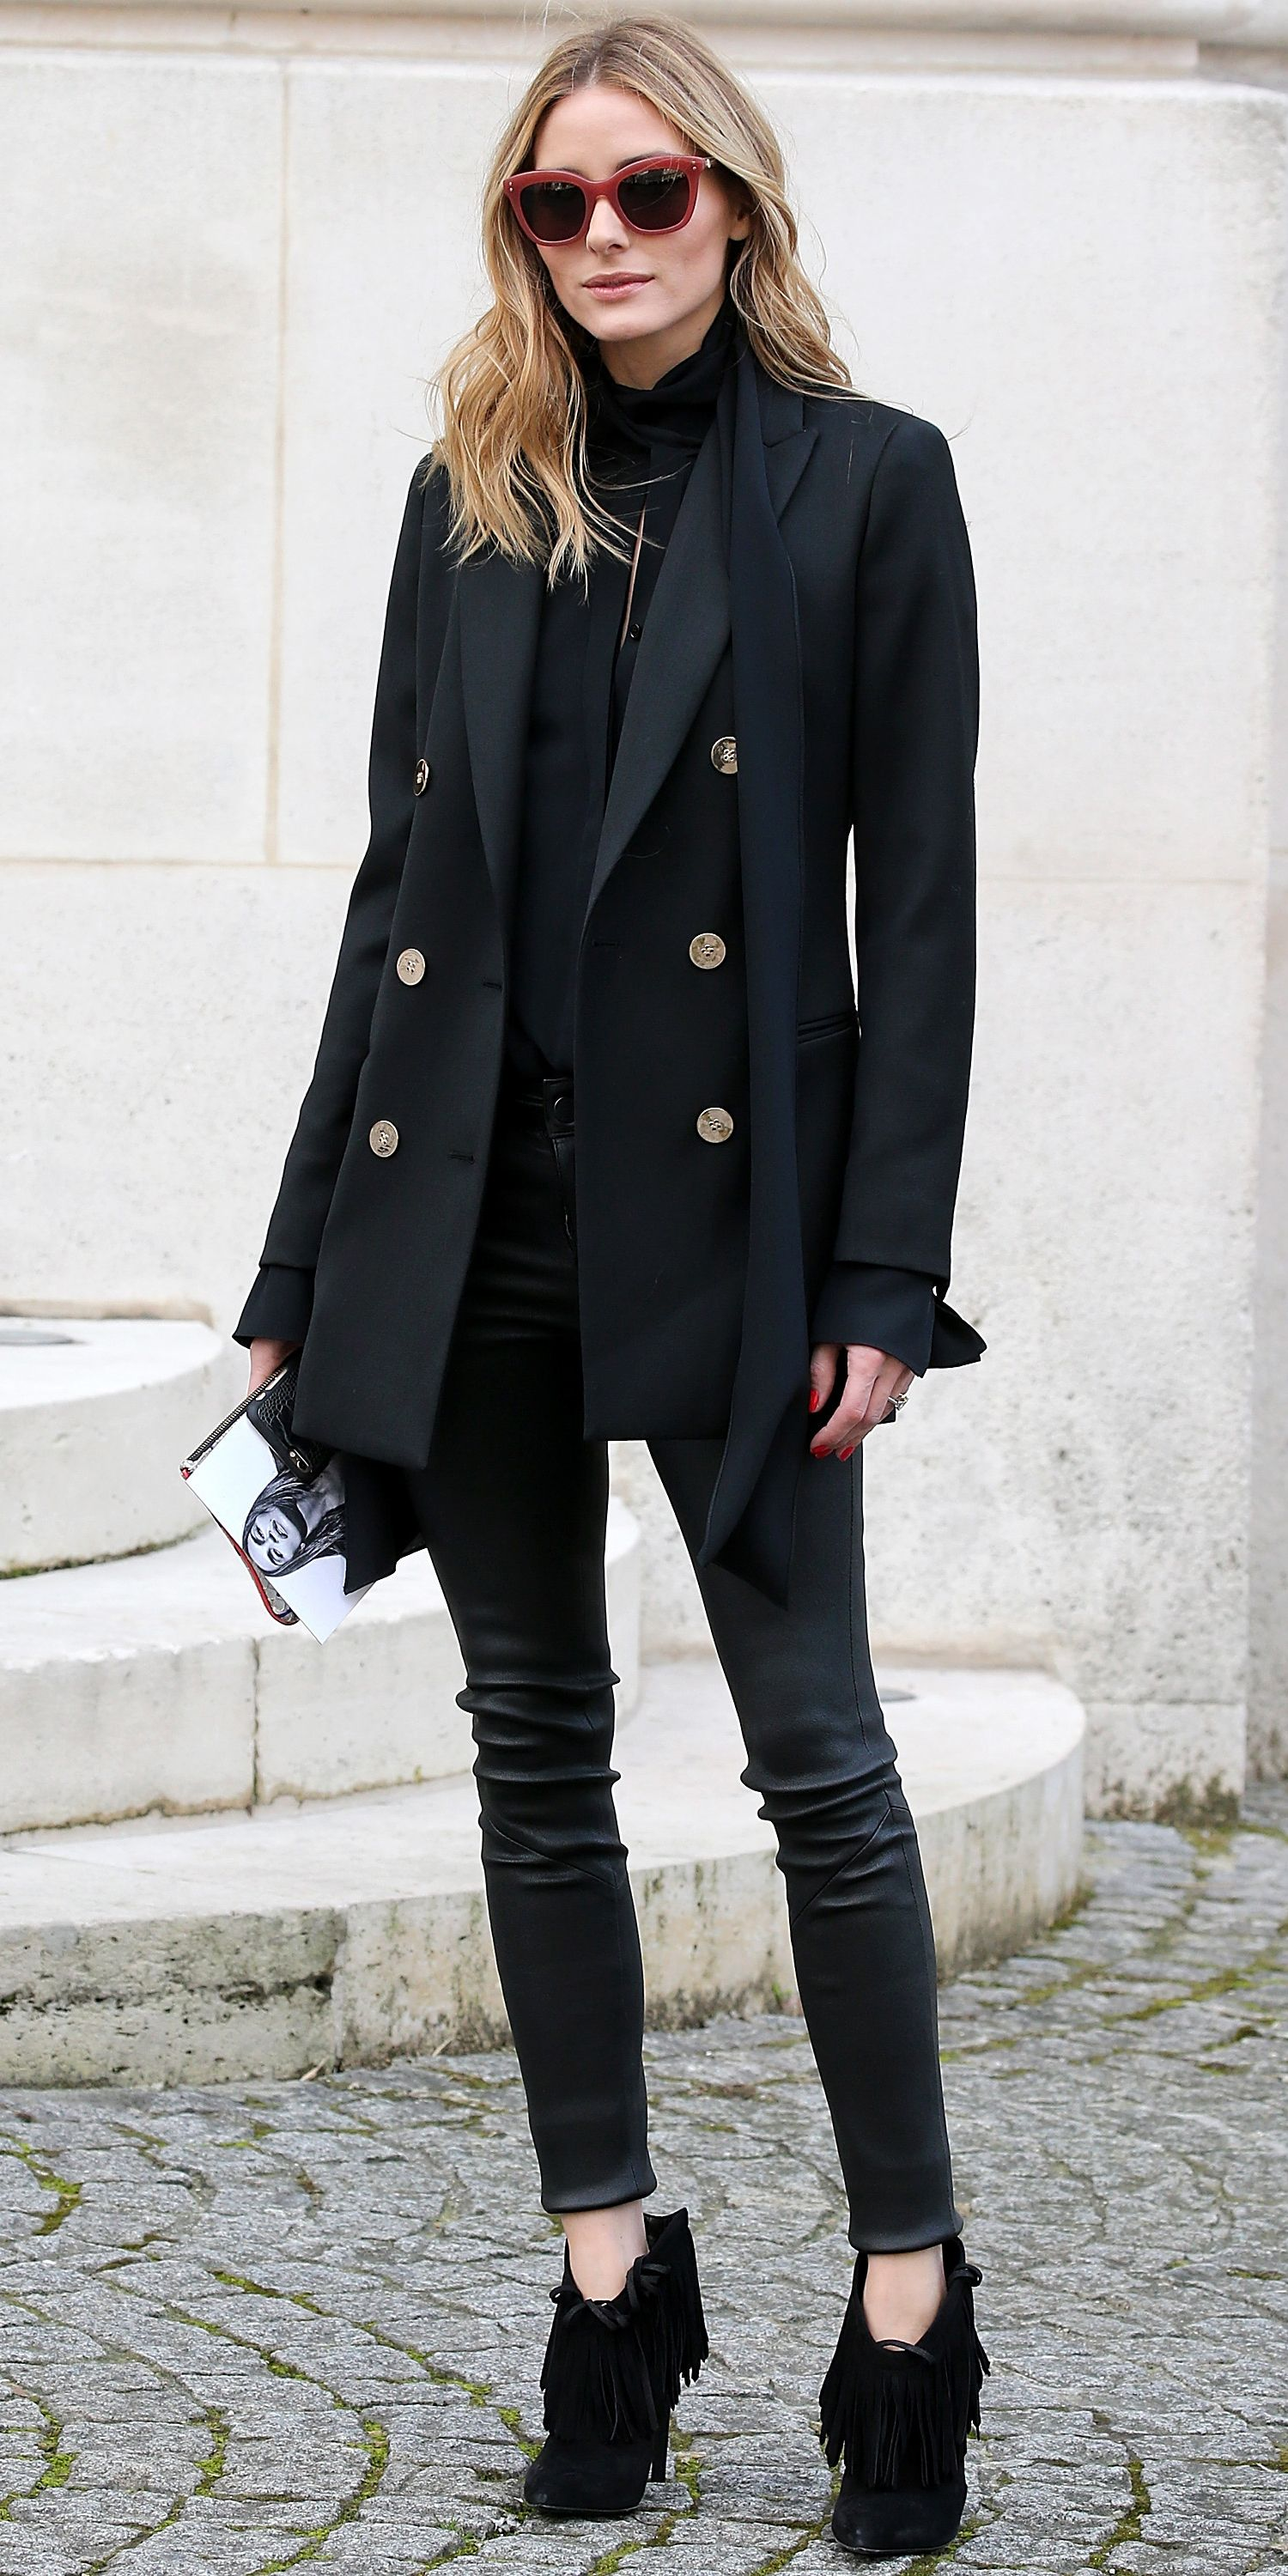 065e12262369 Look of the Day - Olivia Palermo - from InStyle.com